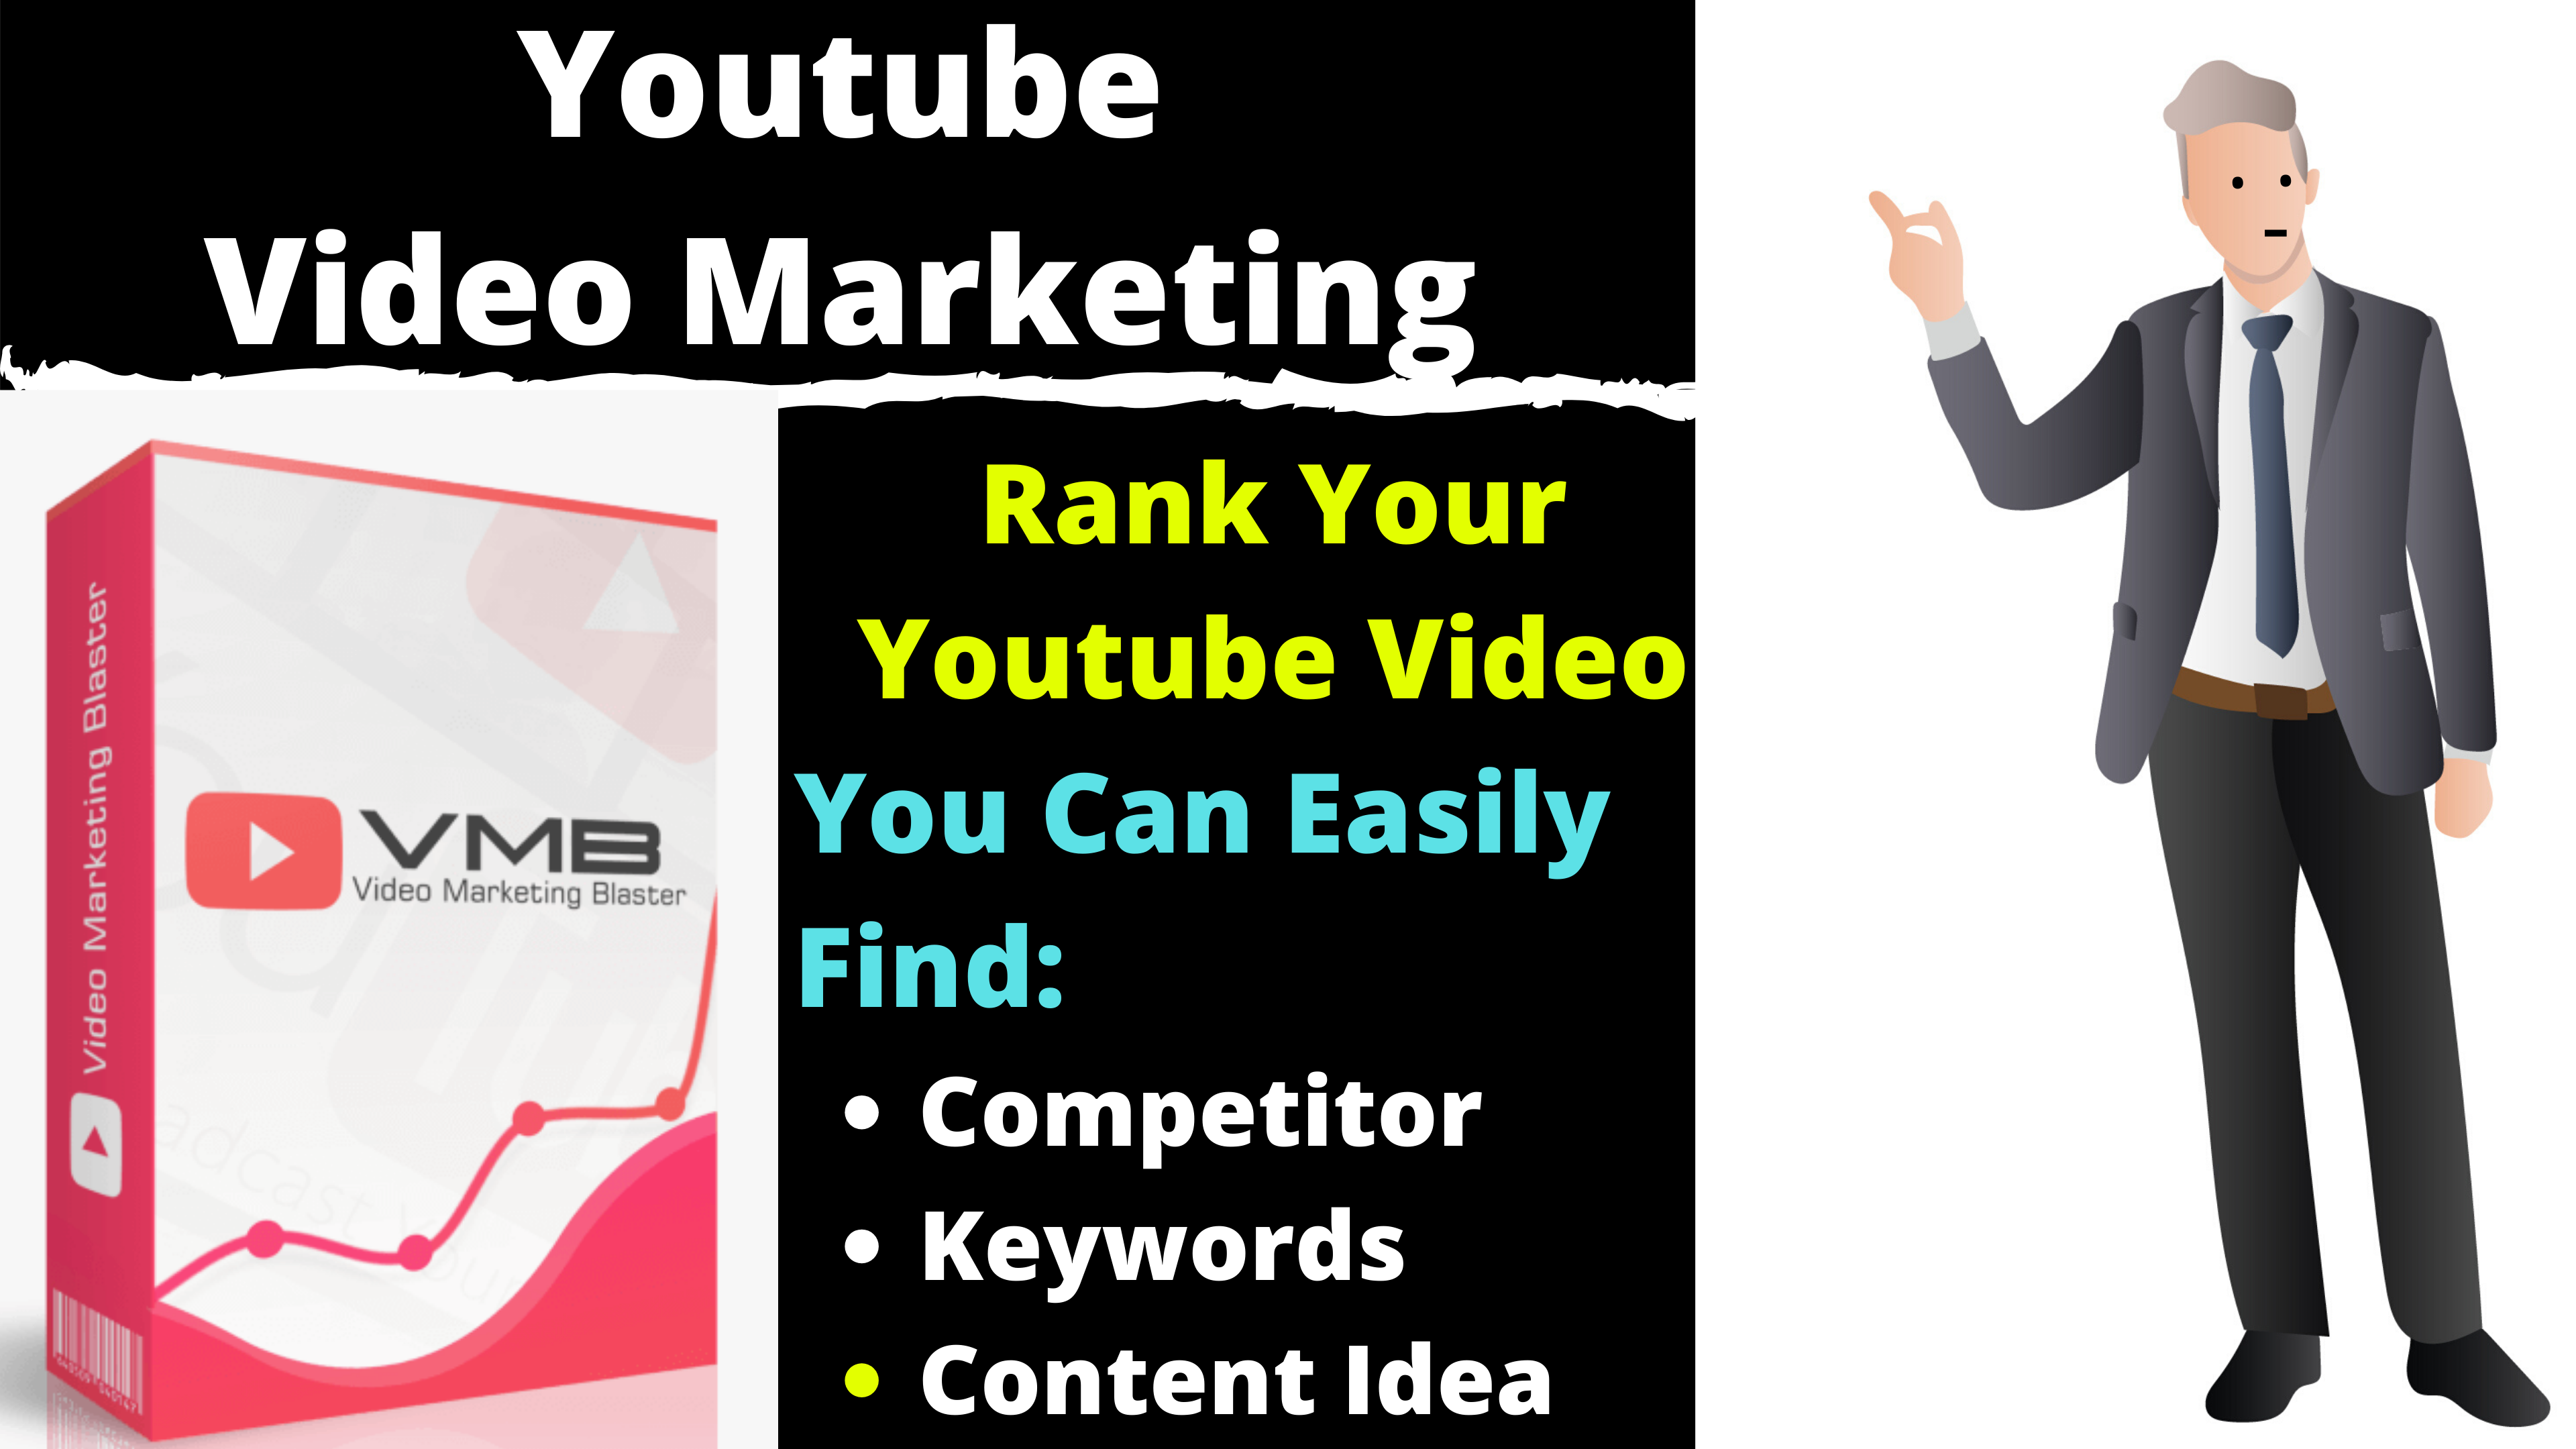 Rank Youtube Video For Traffic With Video Marketing Blaster